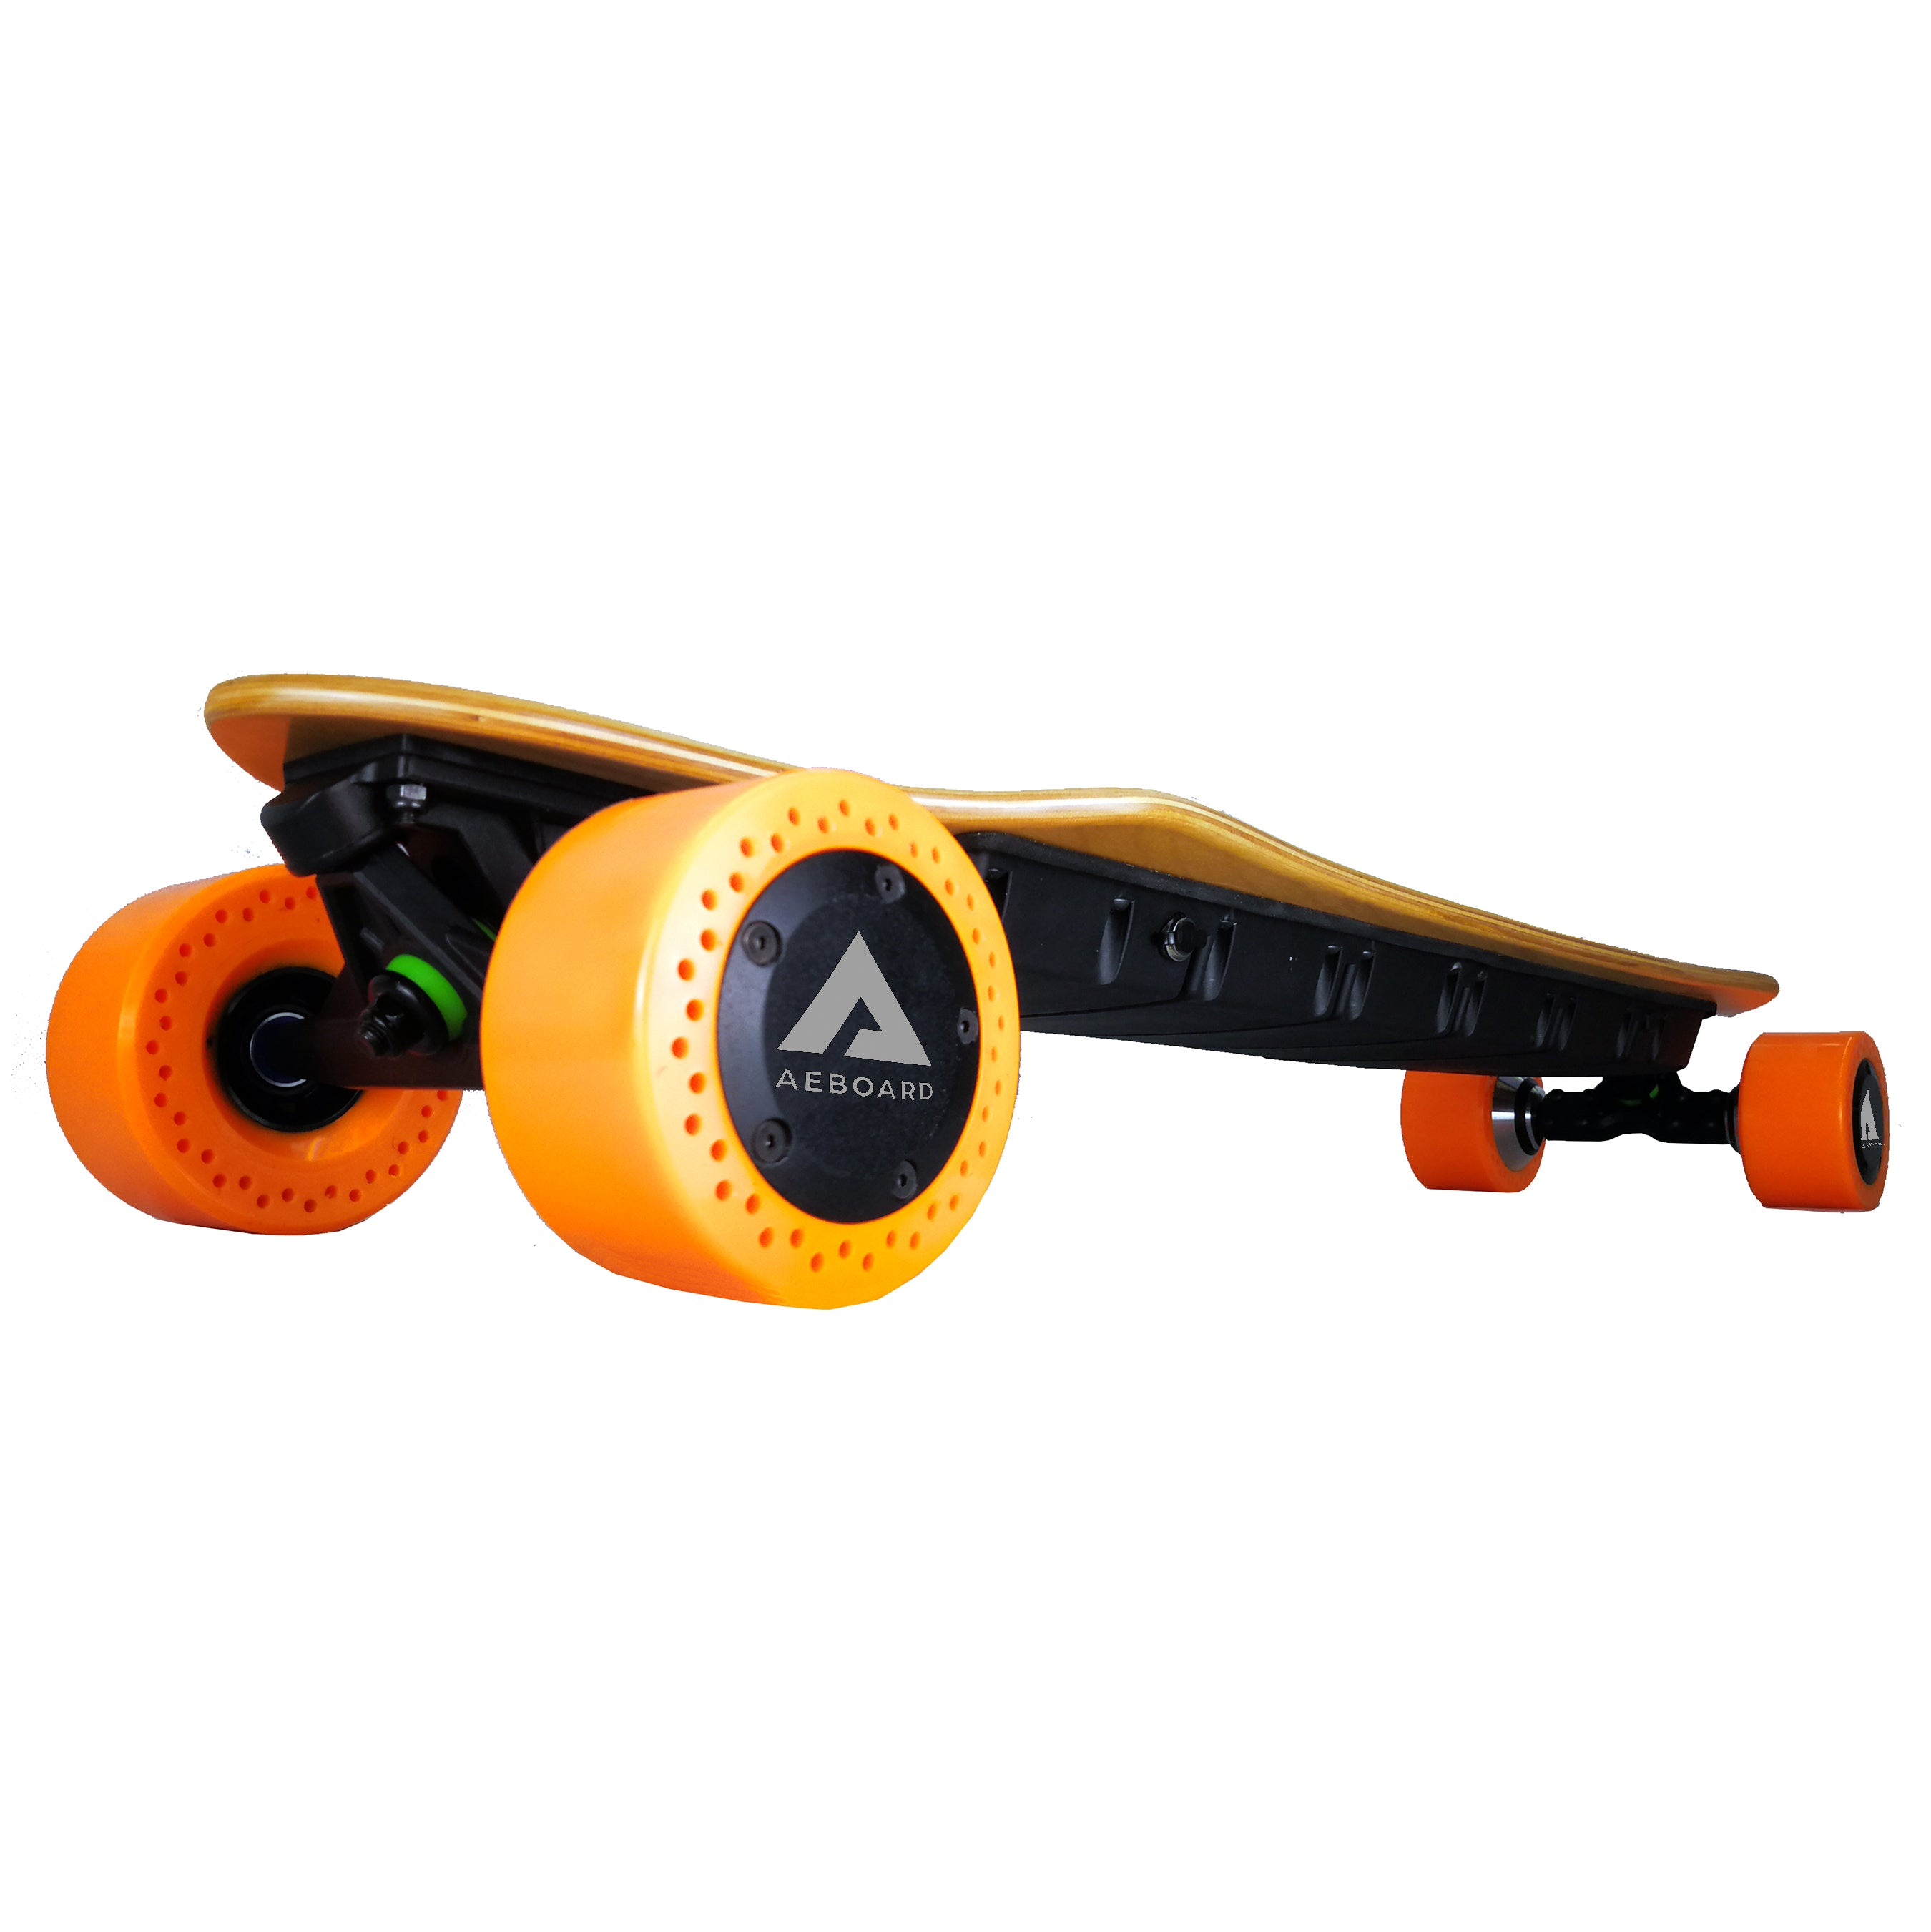 Aeboard AX Plus(105MM Honeycomb wheels) Electric  motorized Skateboard Flex Flexible Battery,electric longboard